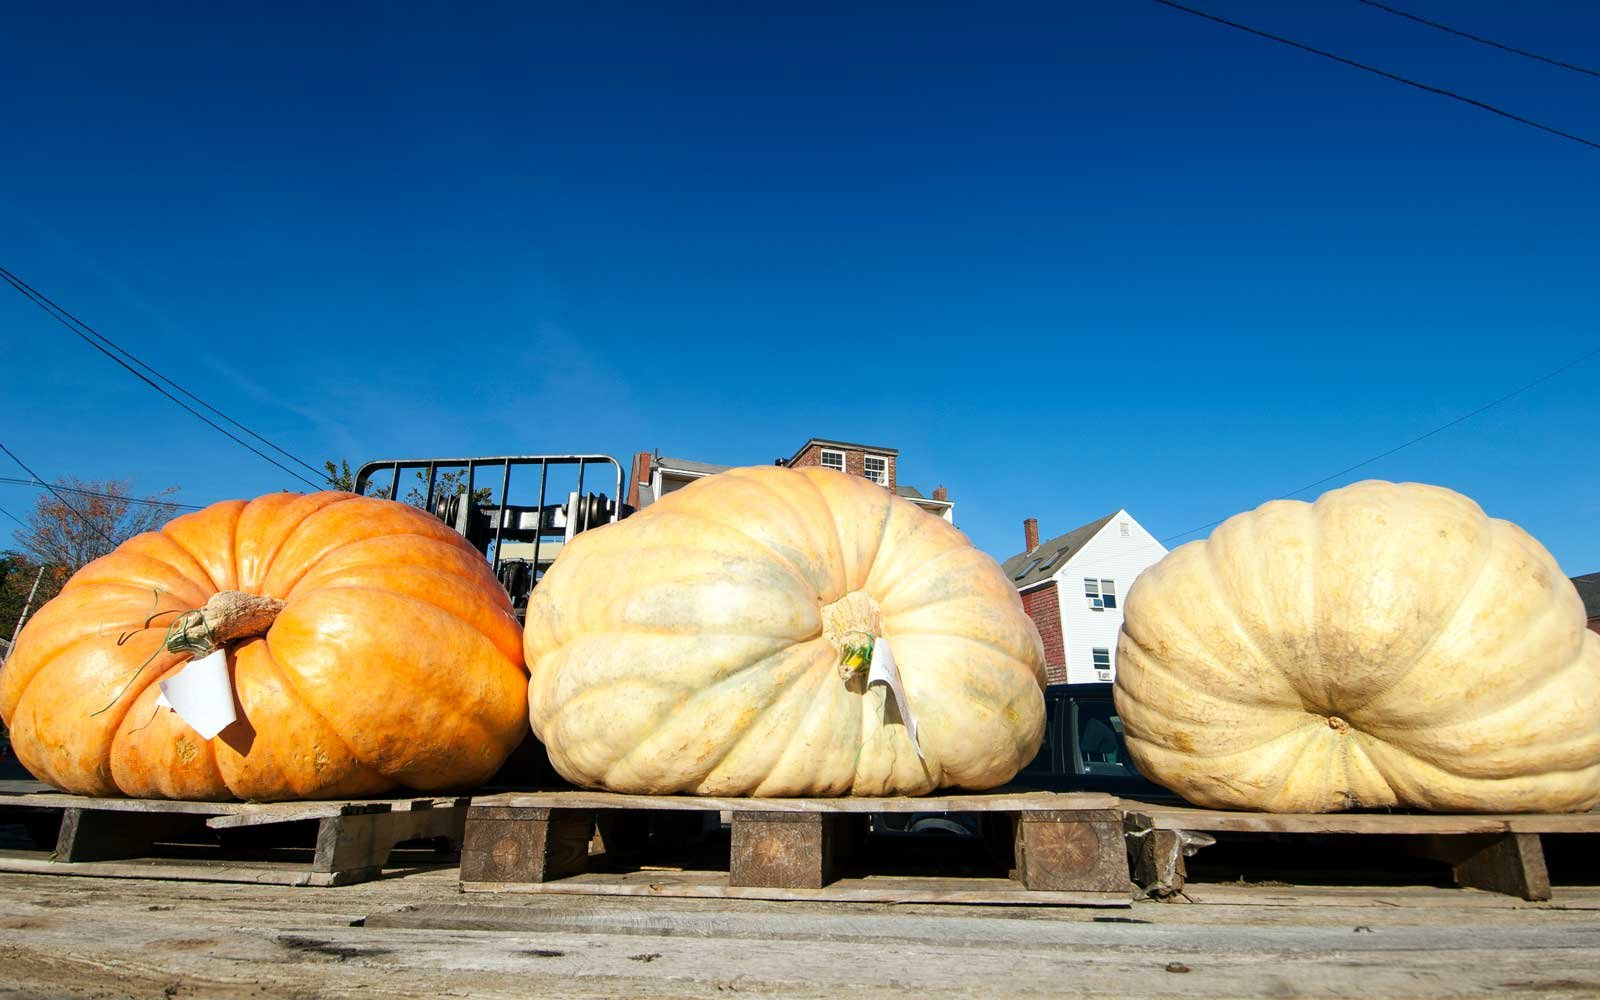 Giant Pumpkins Grown for Pumpkinfest in Damariscotta Maine